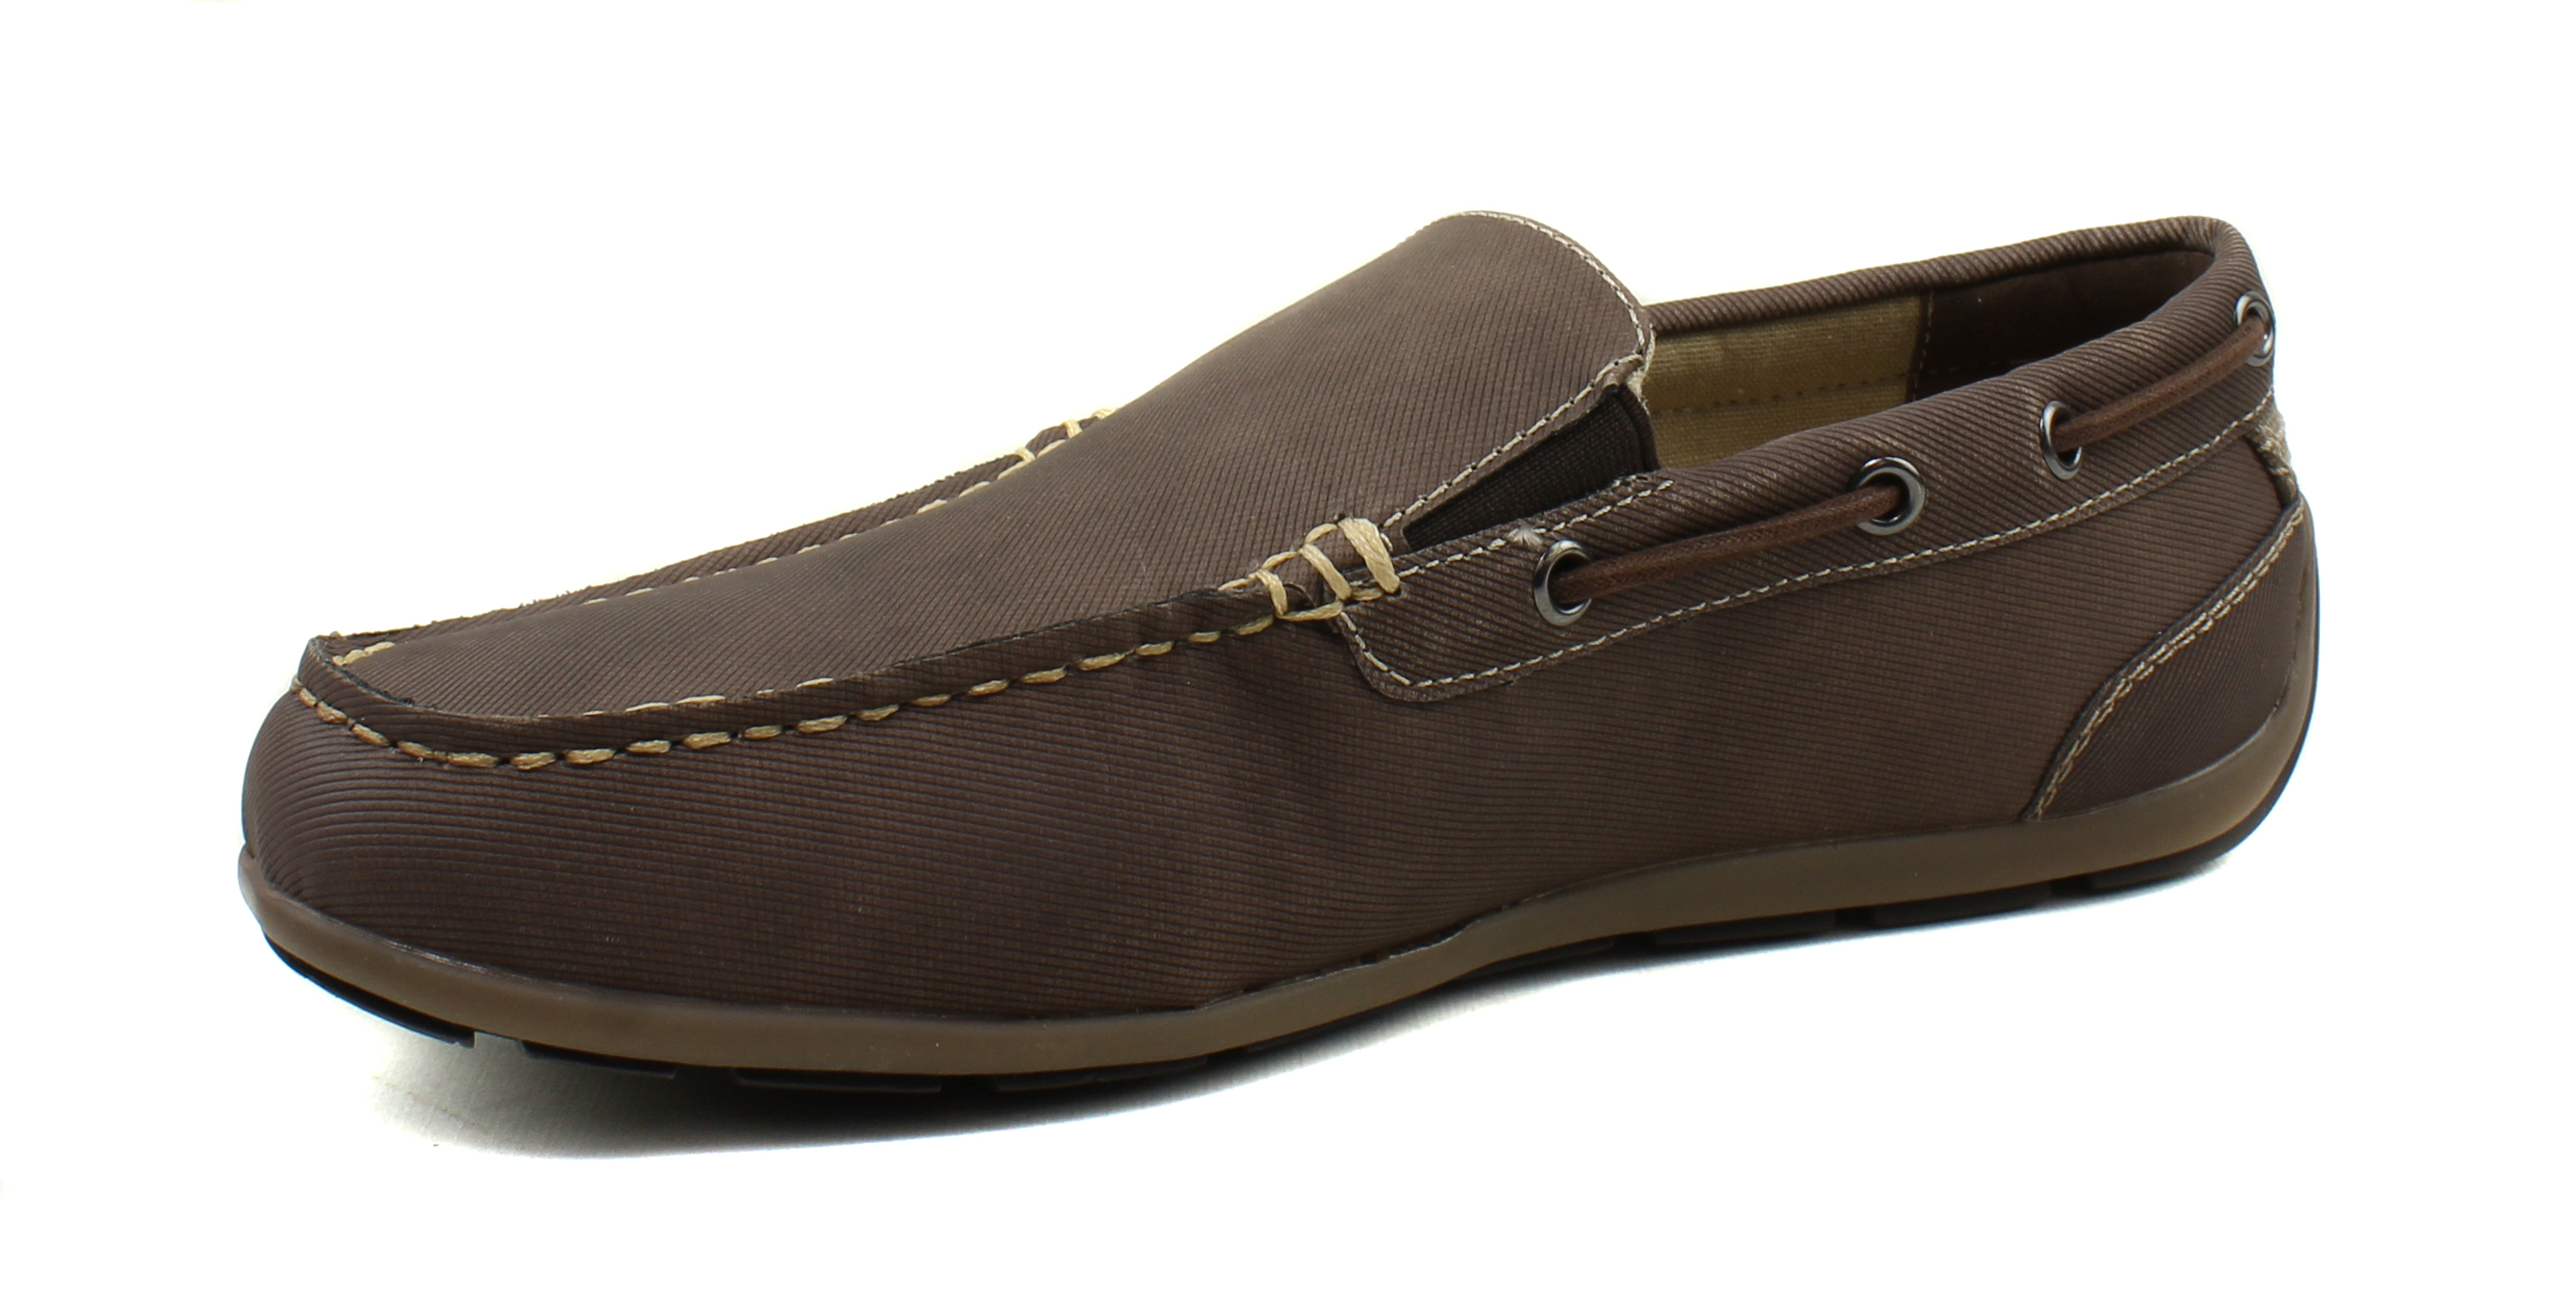 GBX-Mens-Luca-Casual-Moc-Toe-Driving-Loafers thumbnail 10